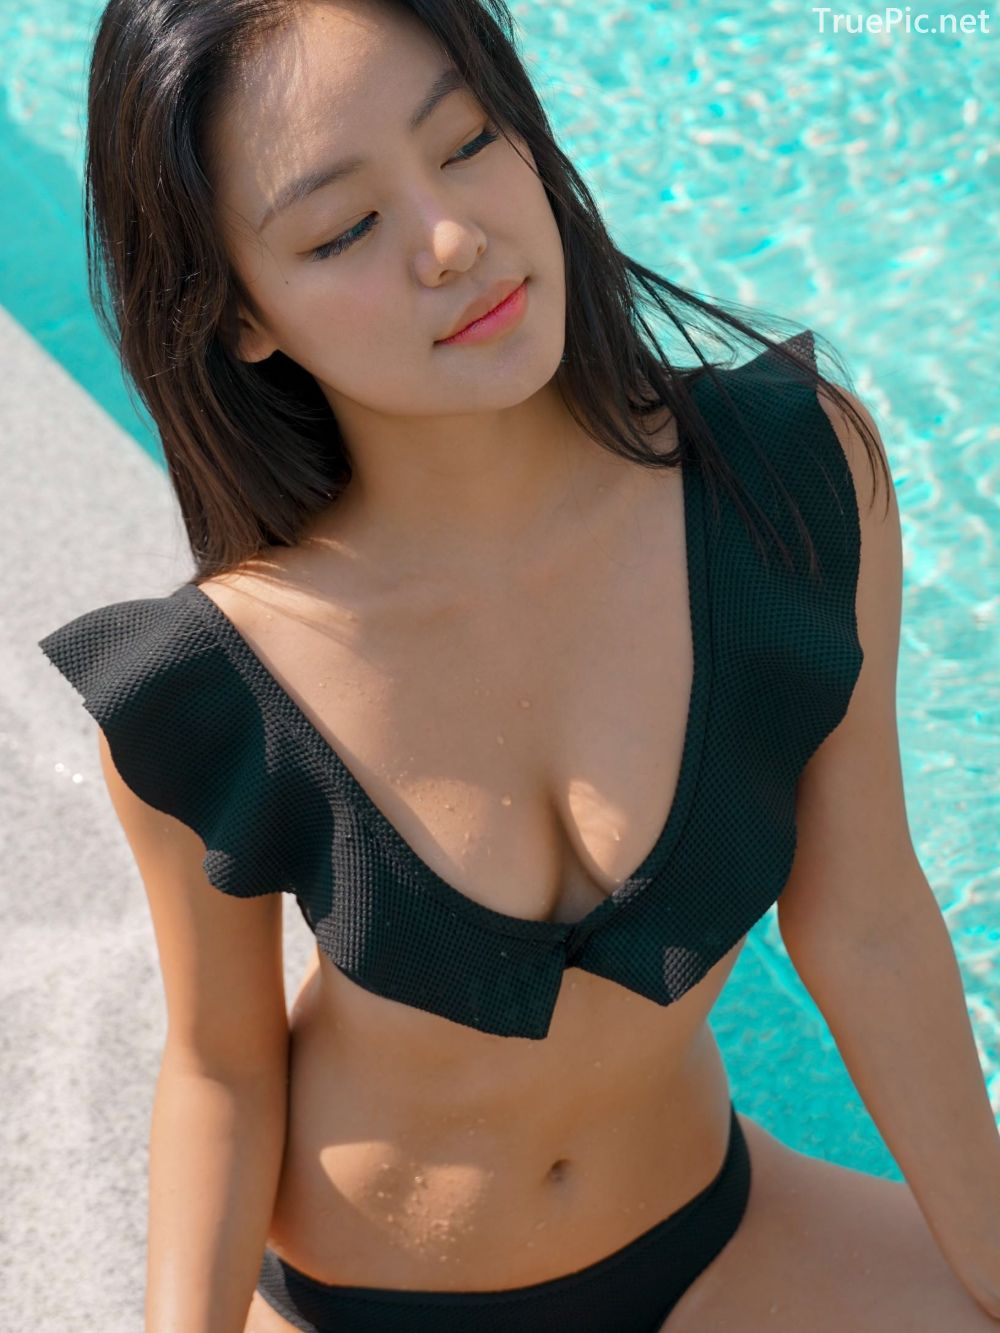 Korean model and fashion - Choi Seok Yeong - Alice Black and Blue Bikini - Picture 10